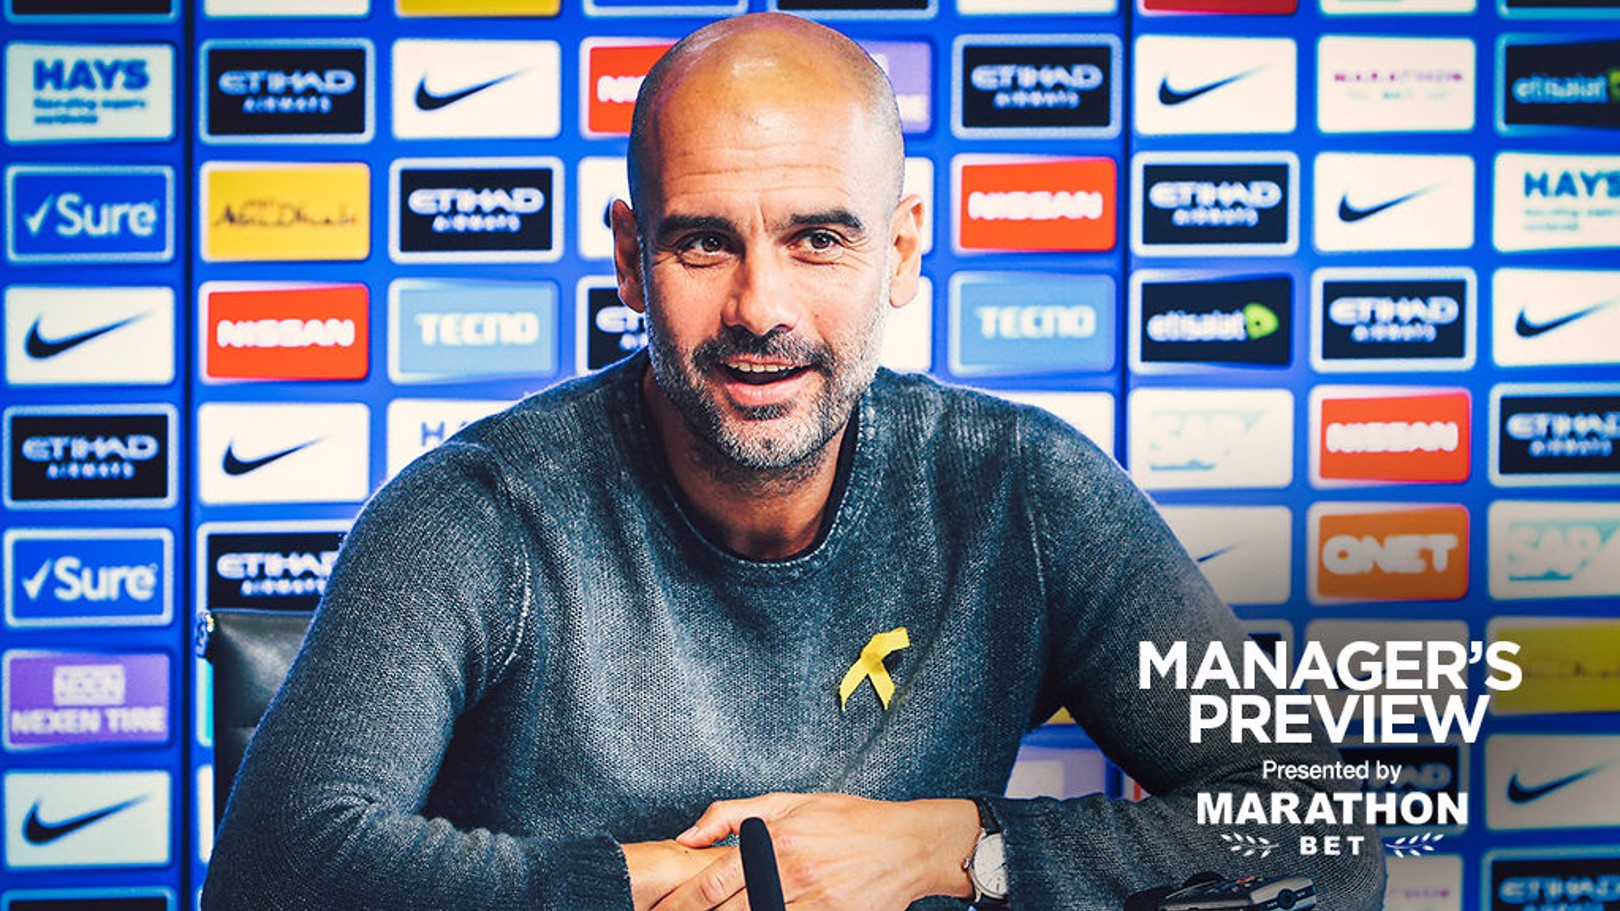 PEP TALK: Guardiola says KDB is well on the road to recovery